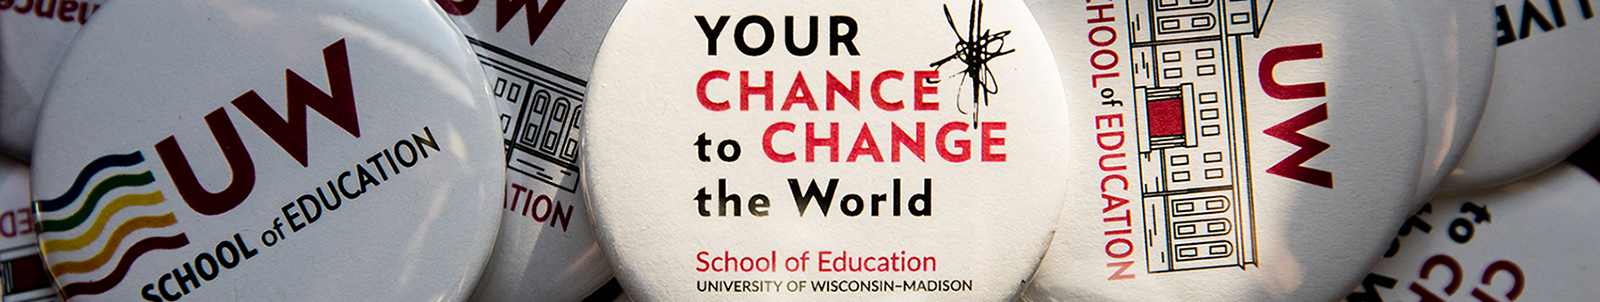 School of Education Buttons - Your Chance to Change the World